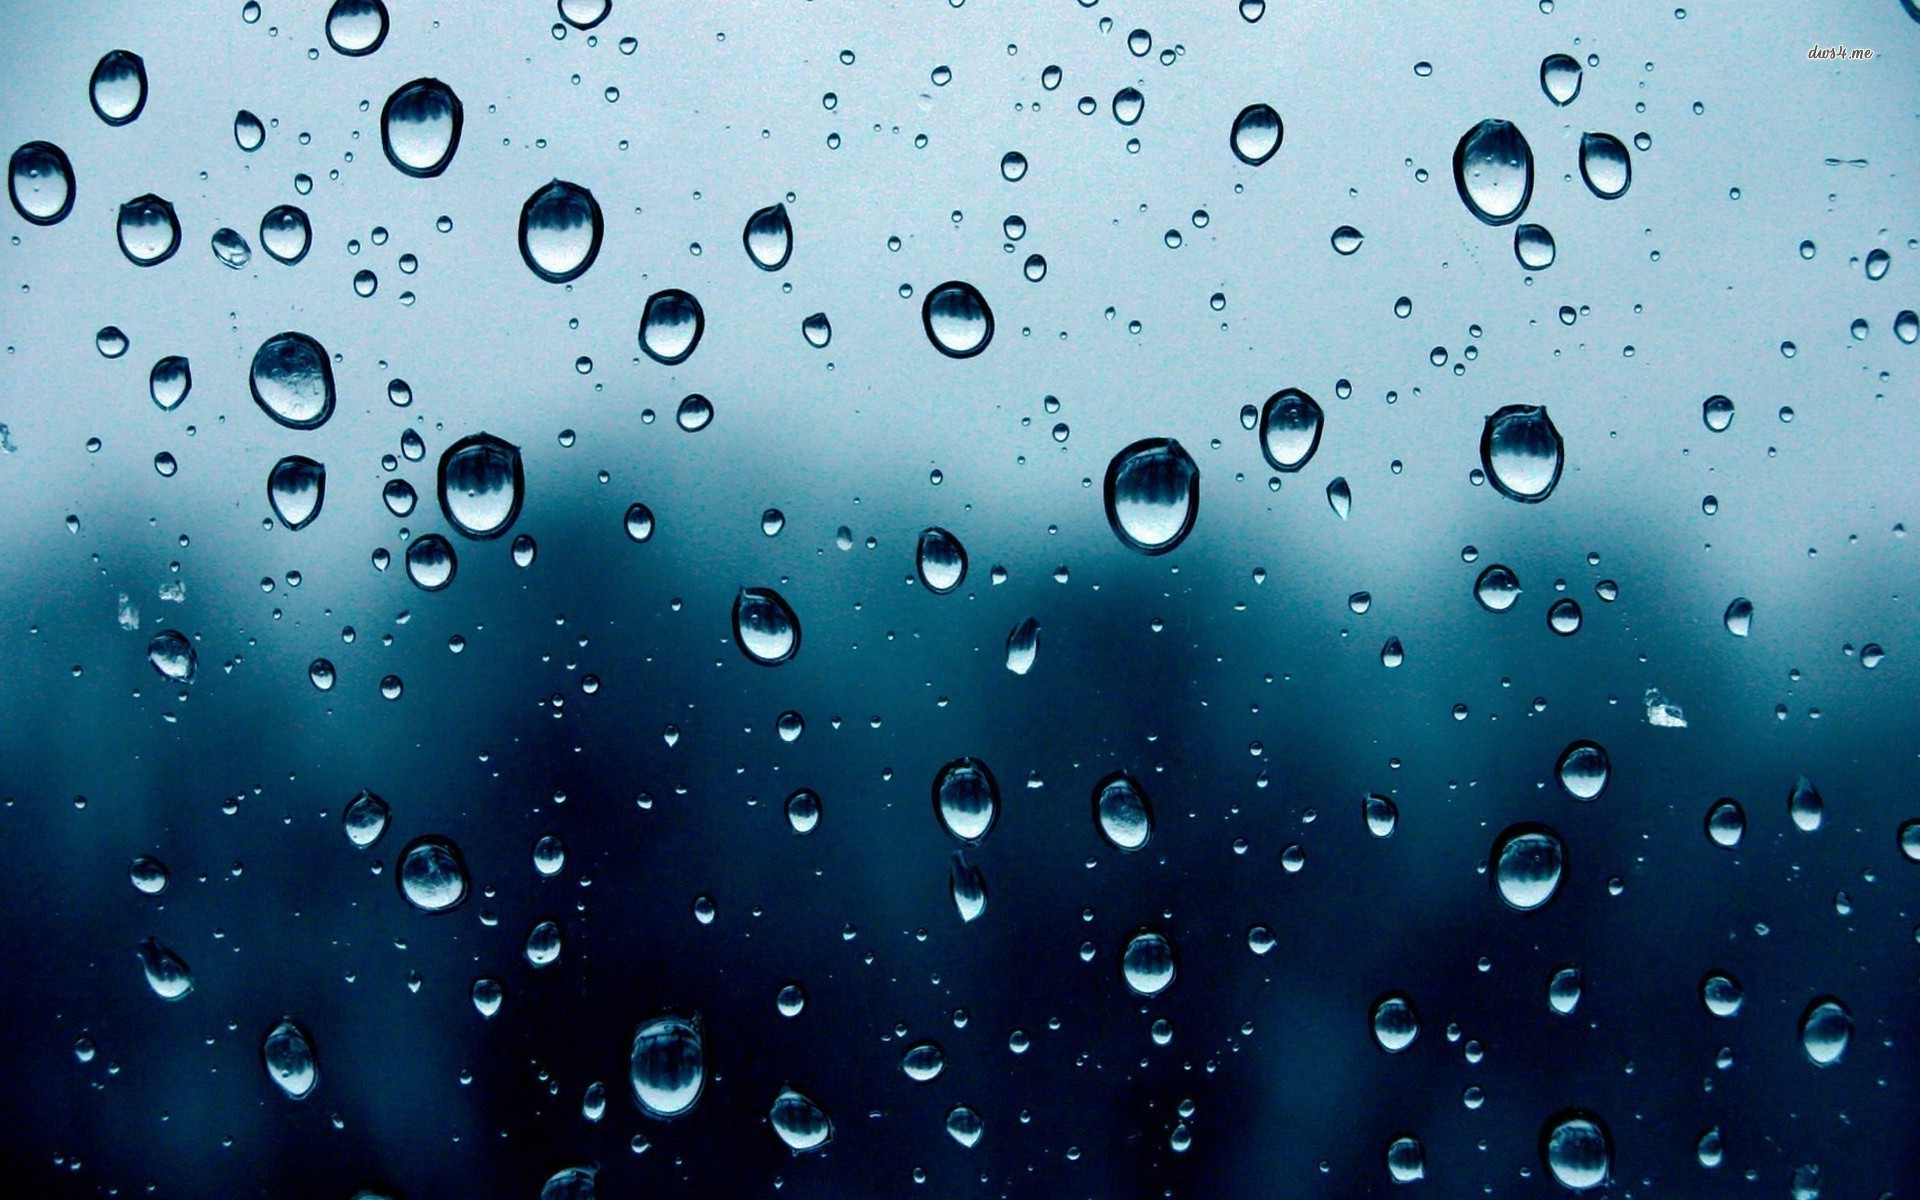 ... of top 10 Rain Drops Wallpapers. These free downloadable wallpapers are HD and available varying range of sizes and resolutions.